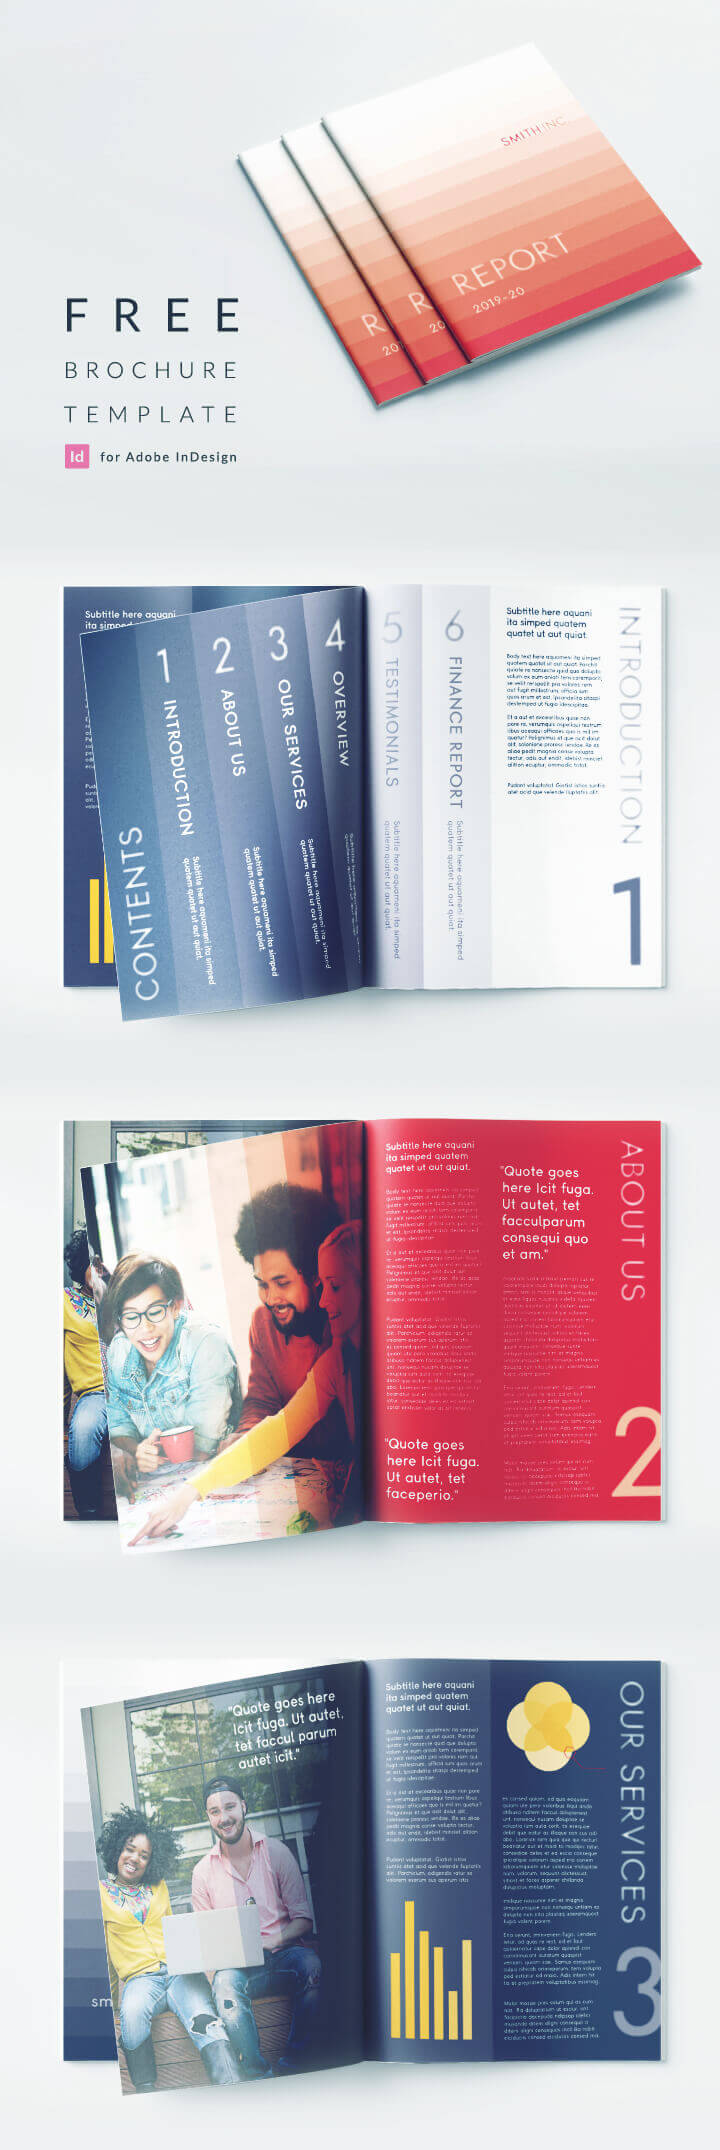 Elegant Corporate Brochure Or Report Indesign Template with regard to Free Indesign Report Templates